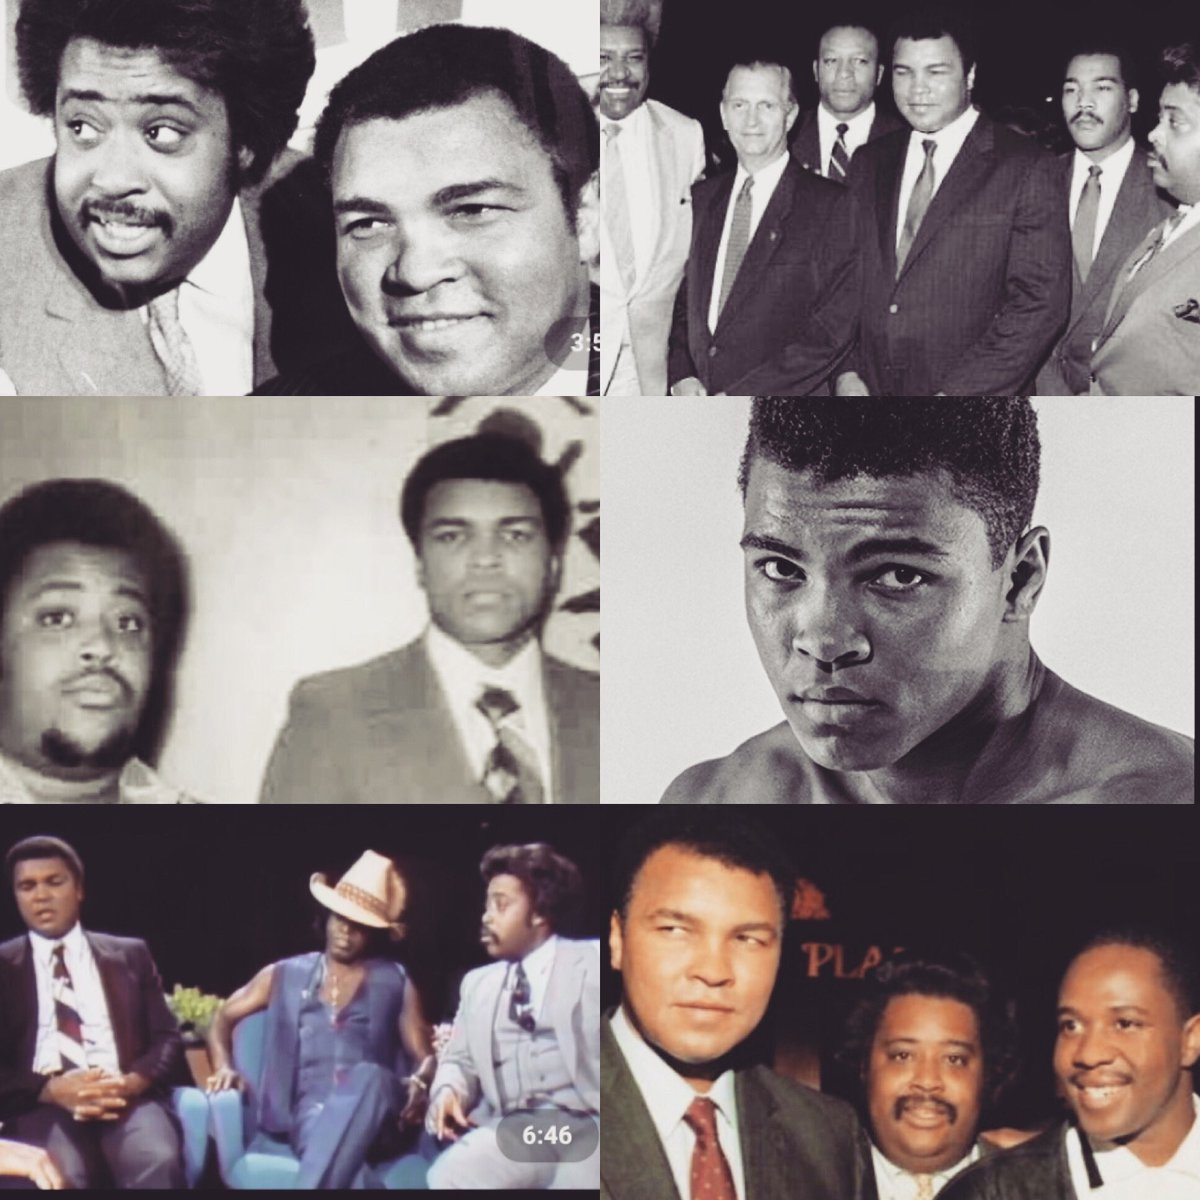 Today we celebrate my friend, my brother, the champ, the greatest of all time forever. Happy Birthday to Muhammad Ali!